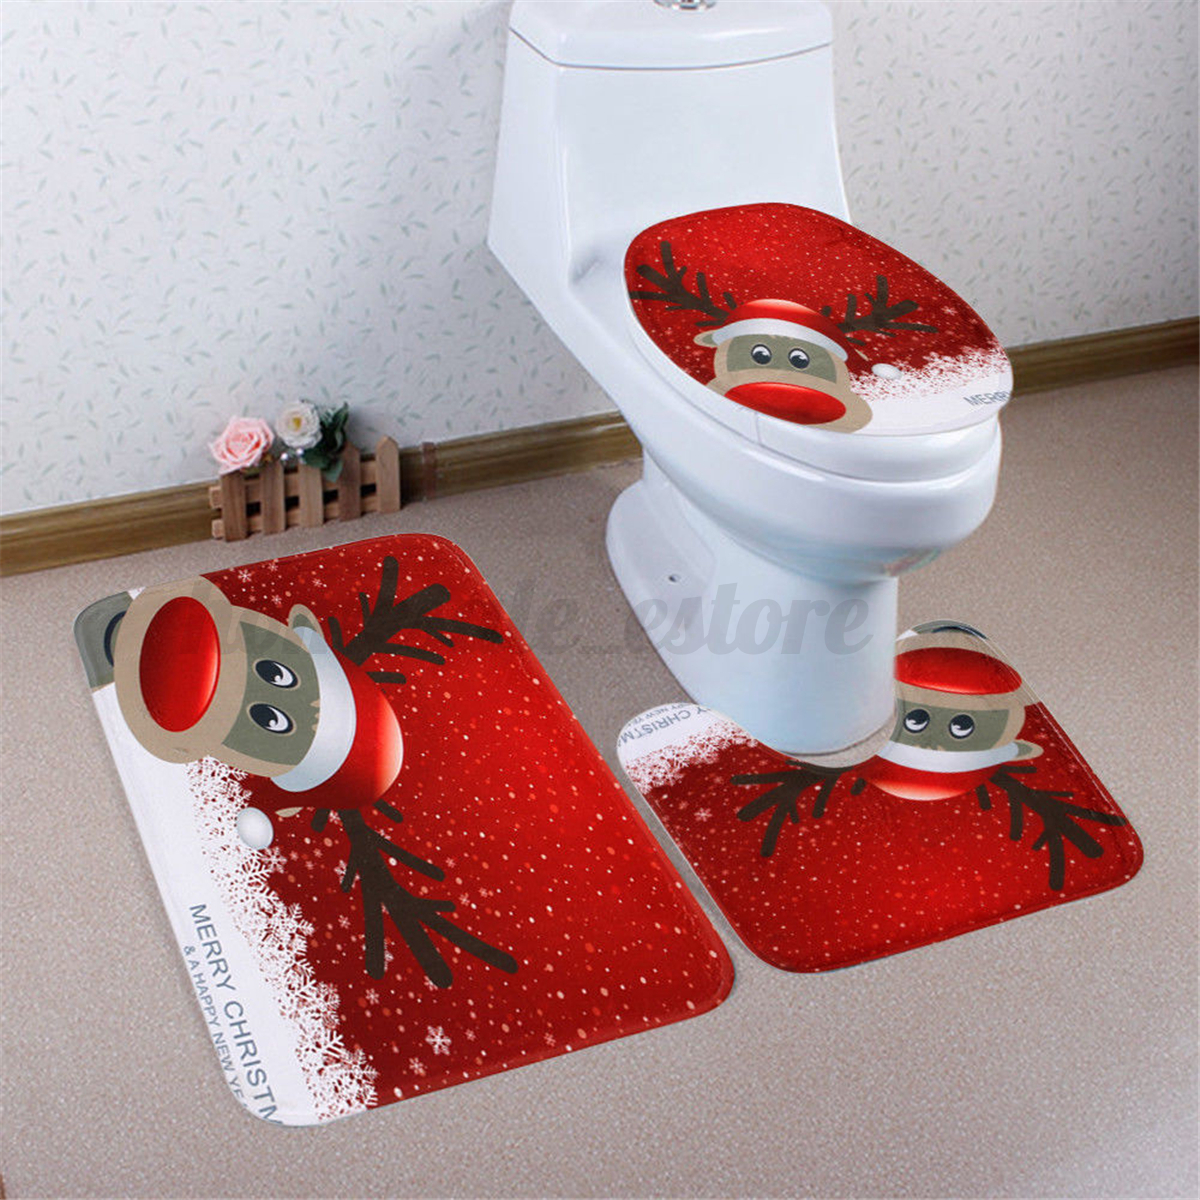 3Pcs Set Christmas Snowman Santa Toilet Seat Cover